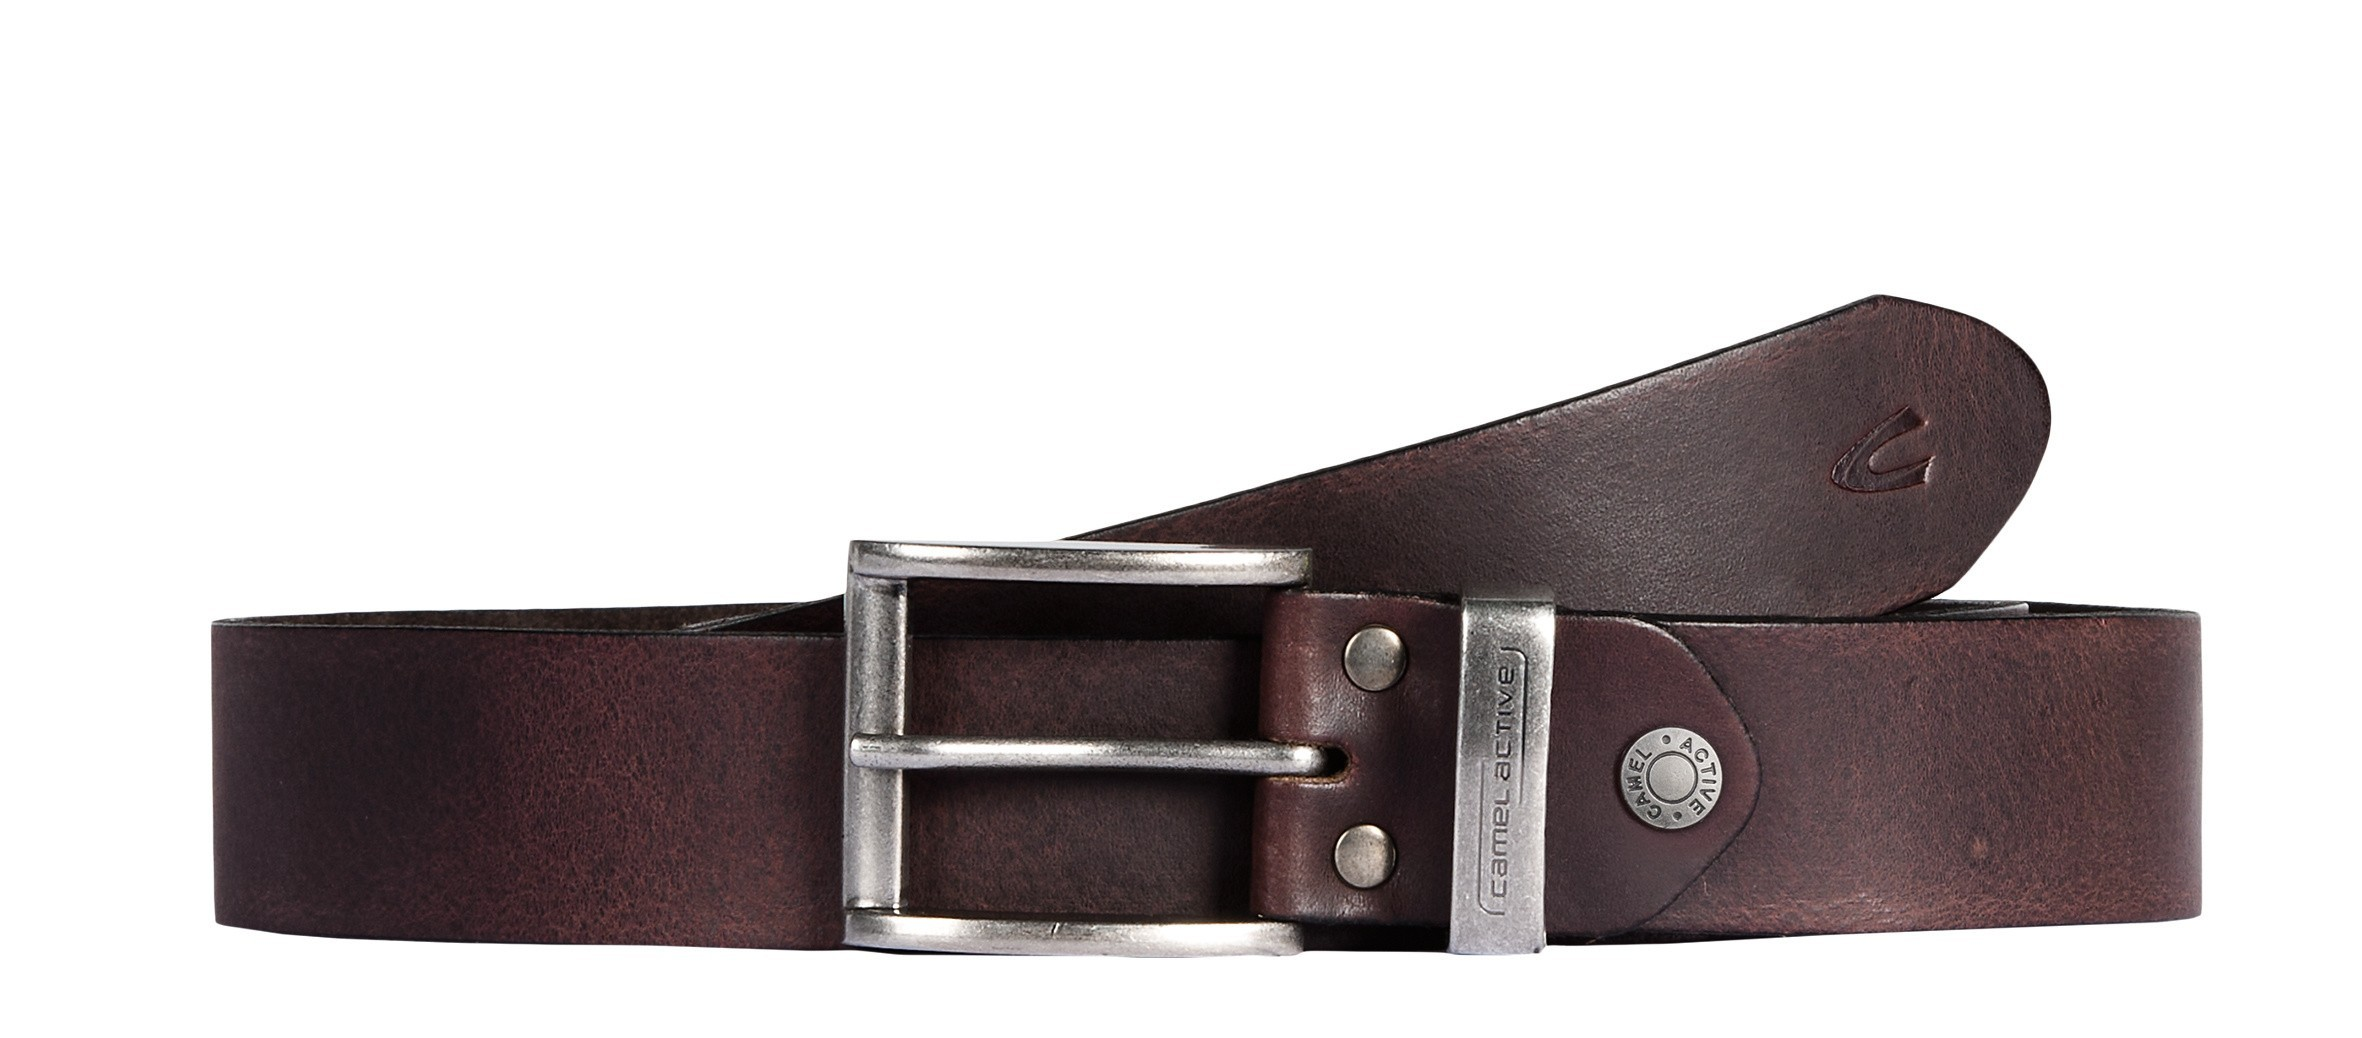 Camel Active Belt 3.5 cm 101-115 Brown